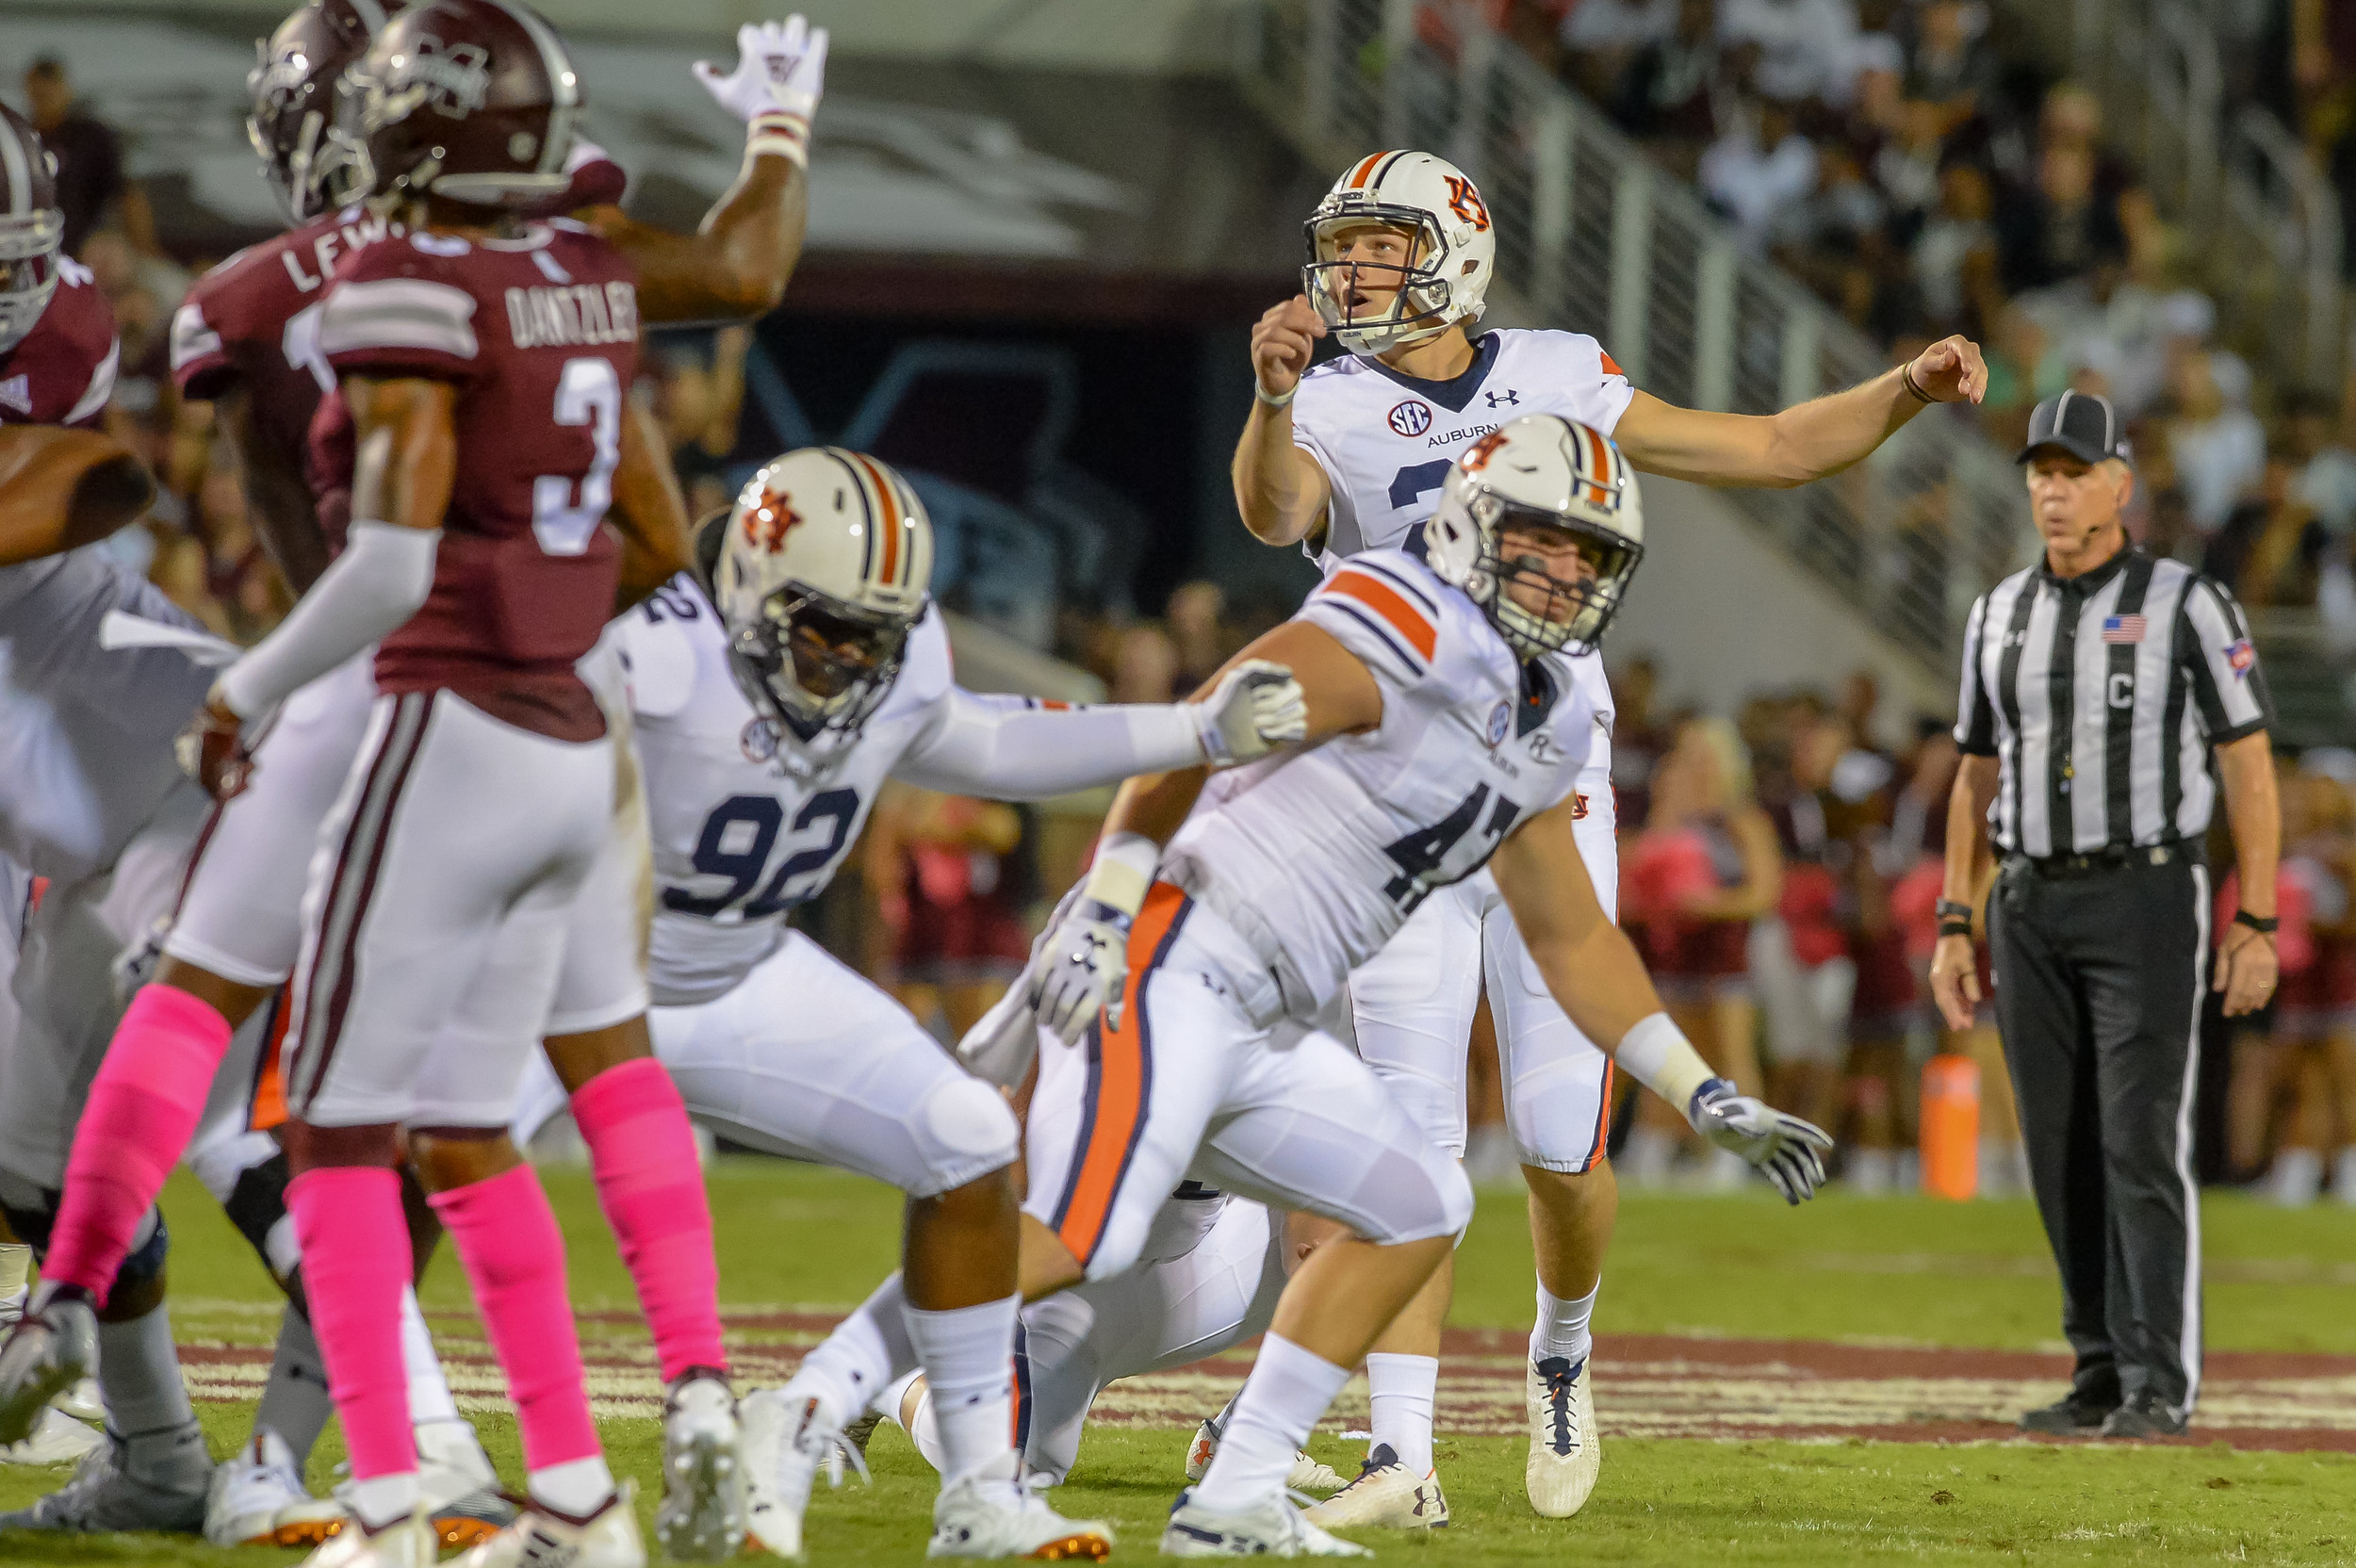 Auburn Tigers place kicker Anders Carlson (26) watches as his 47 yard field goal attempt is good during the first half of Saturday's game, at Davis Wade Stadium in Starkville, MS. Daily Mountain Eagle -  Jeff Johnsey